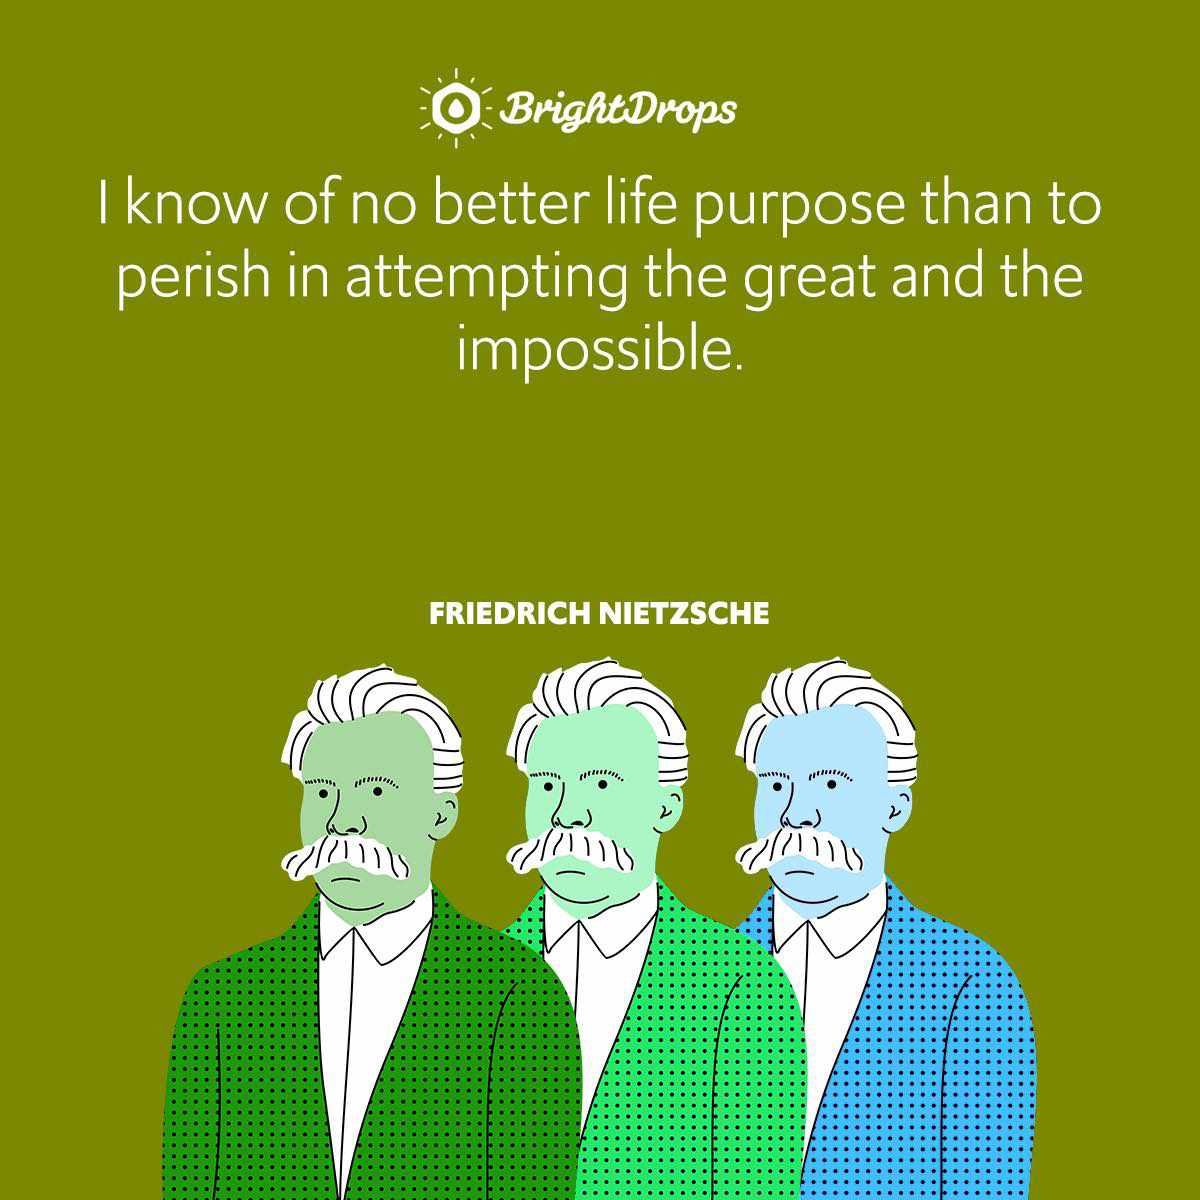 I know of no better life purpose than to perish in attempting the great and the impossible.